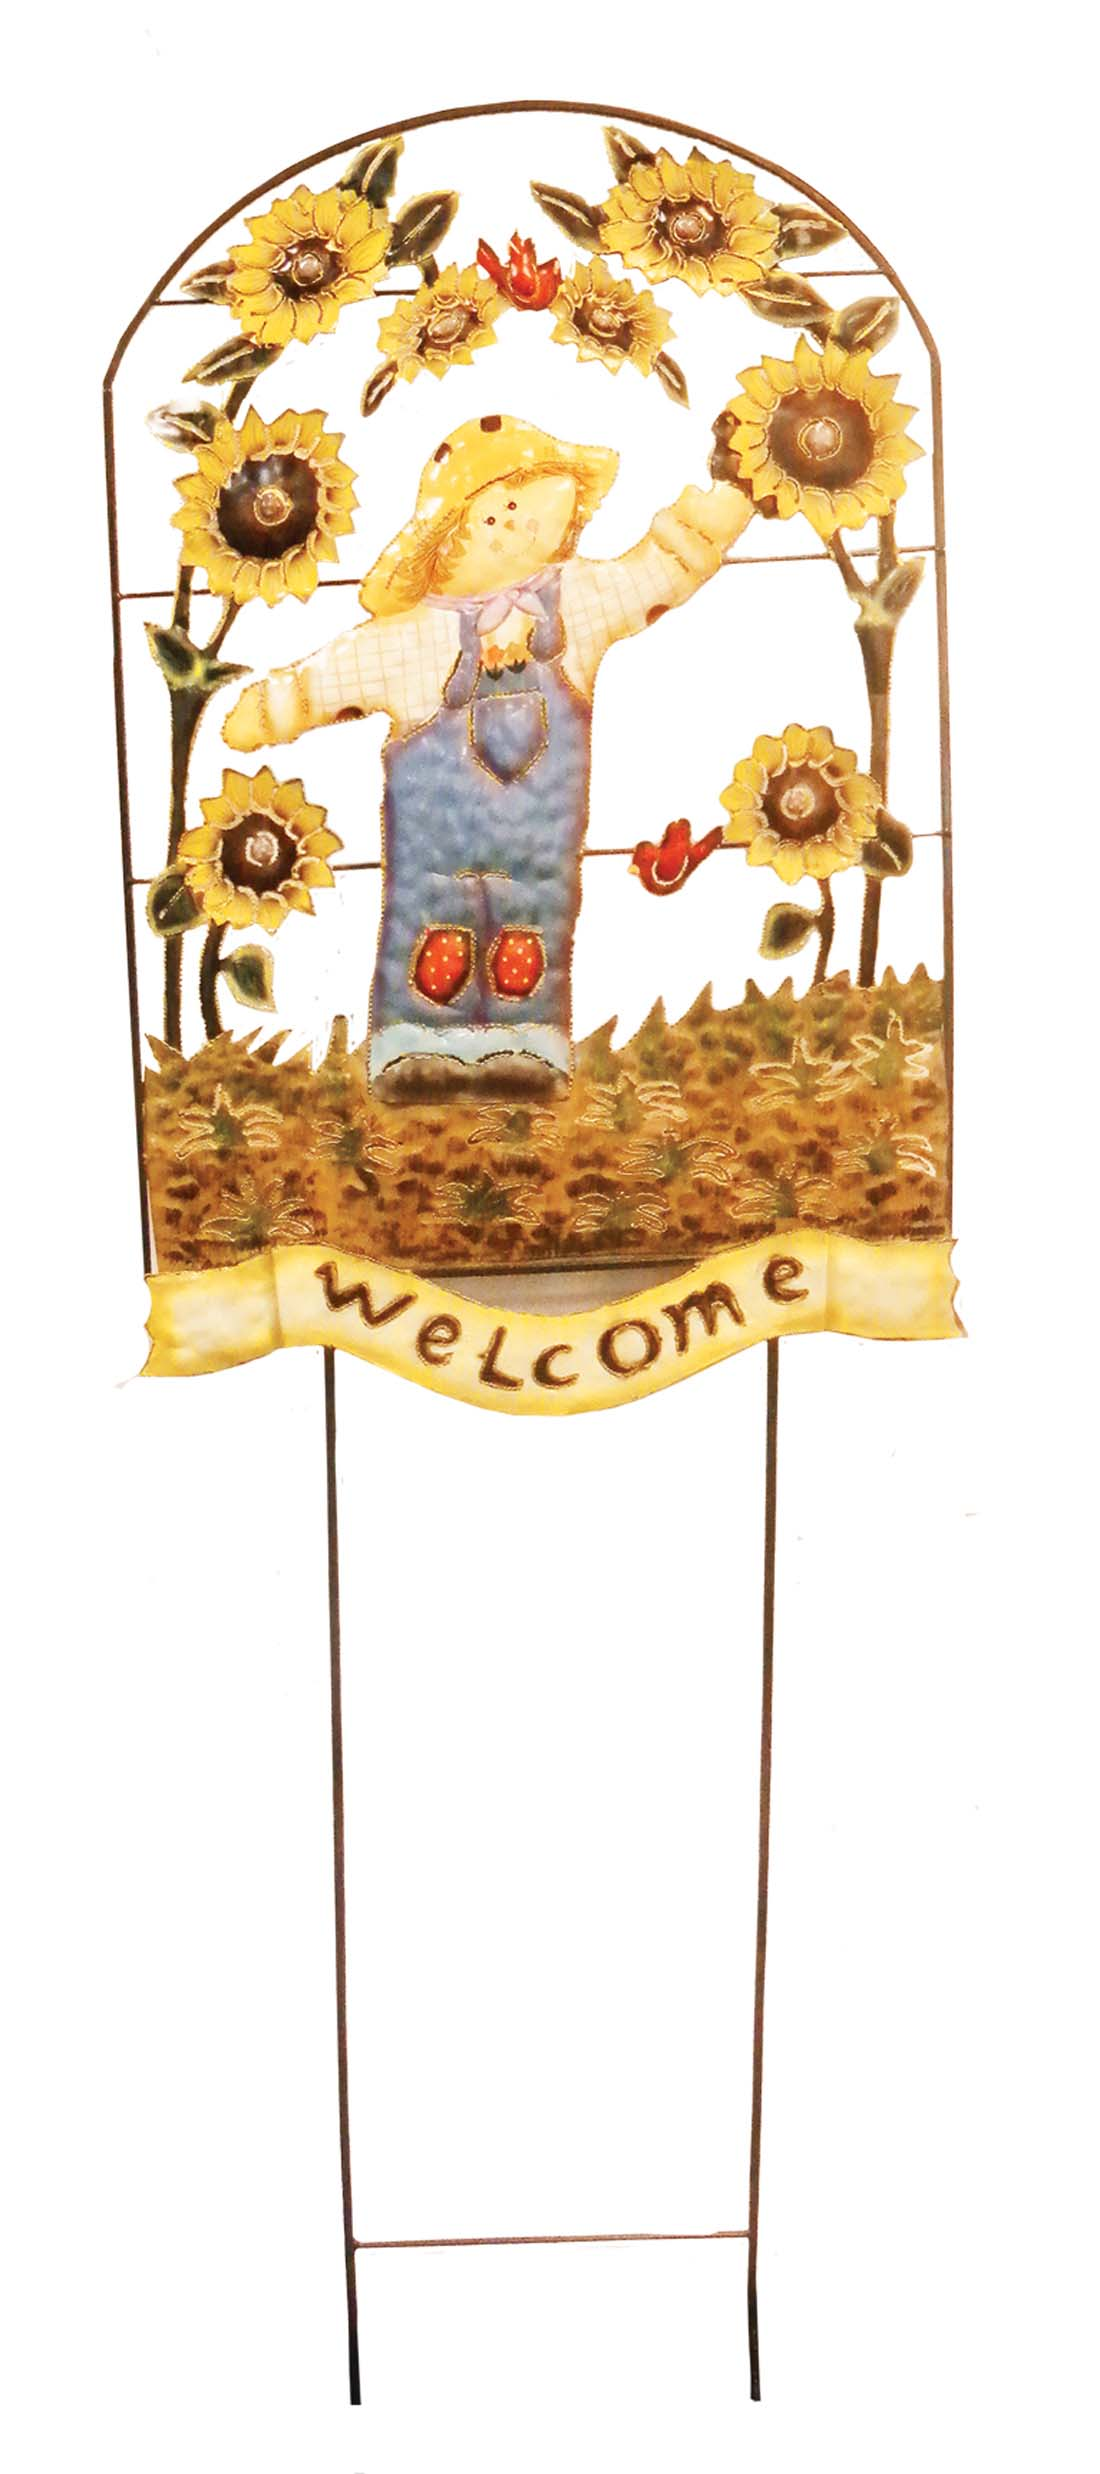 "View HAND PAINTED SCARECROW LAWN WELCOME DECORATION JUMBO 57"" TALL X 18"" WIDE"